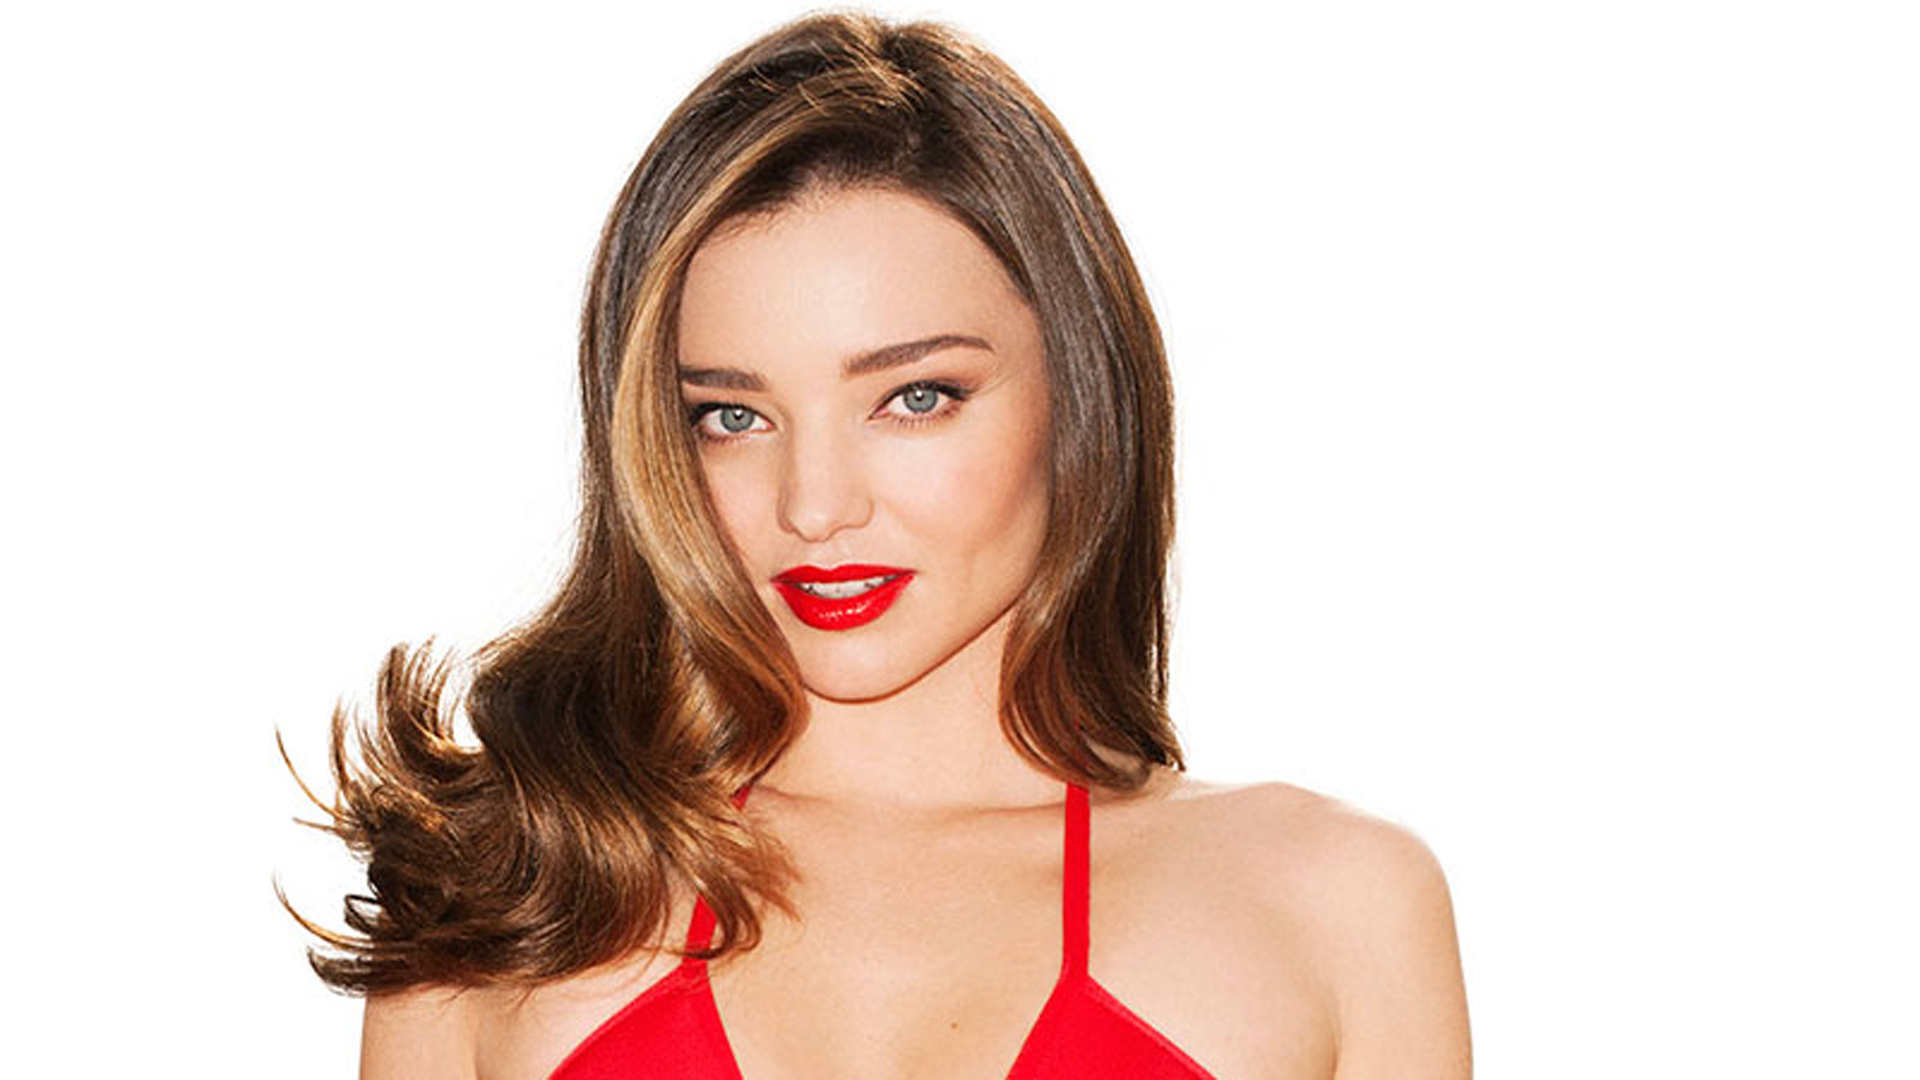 Miranda Kerr Hd Wallpaper - WallpaperSafari